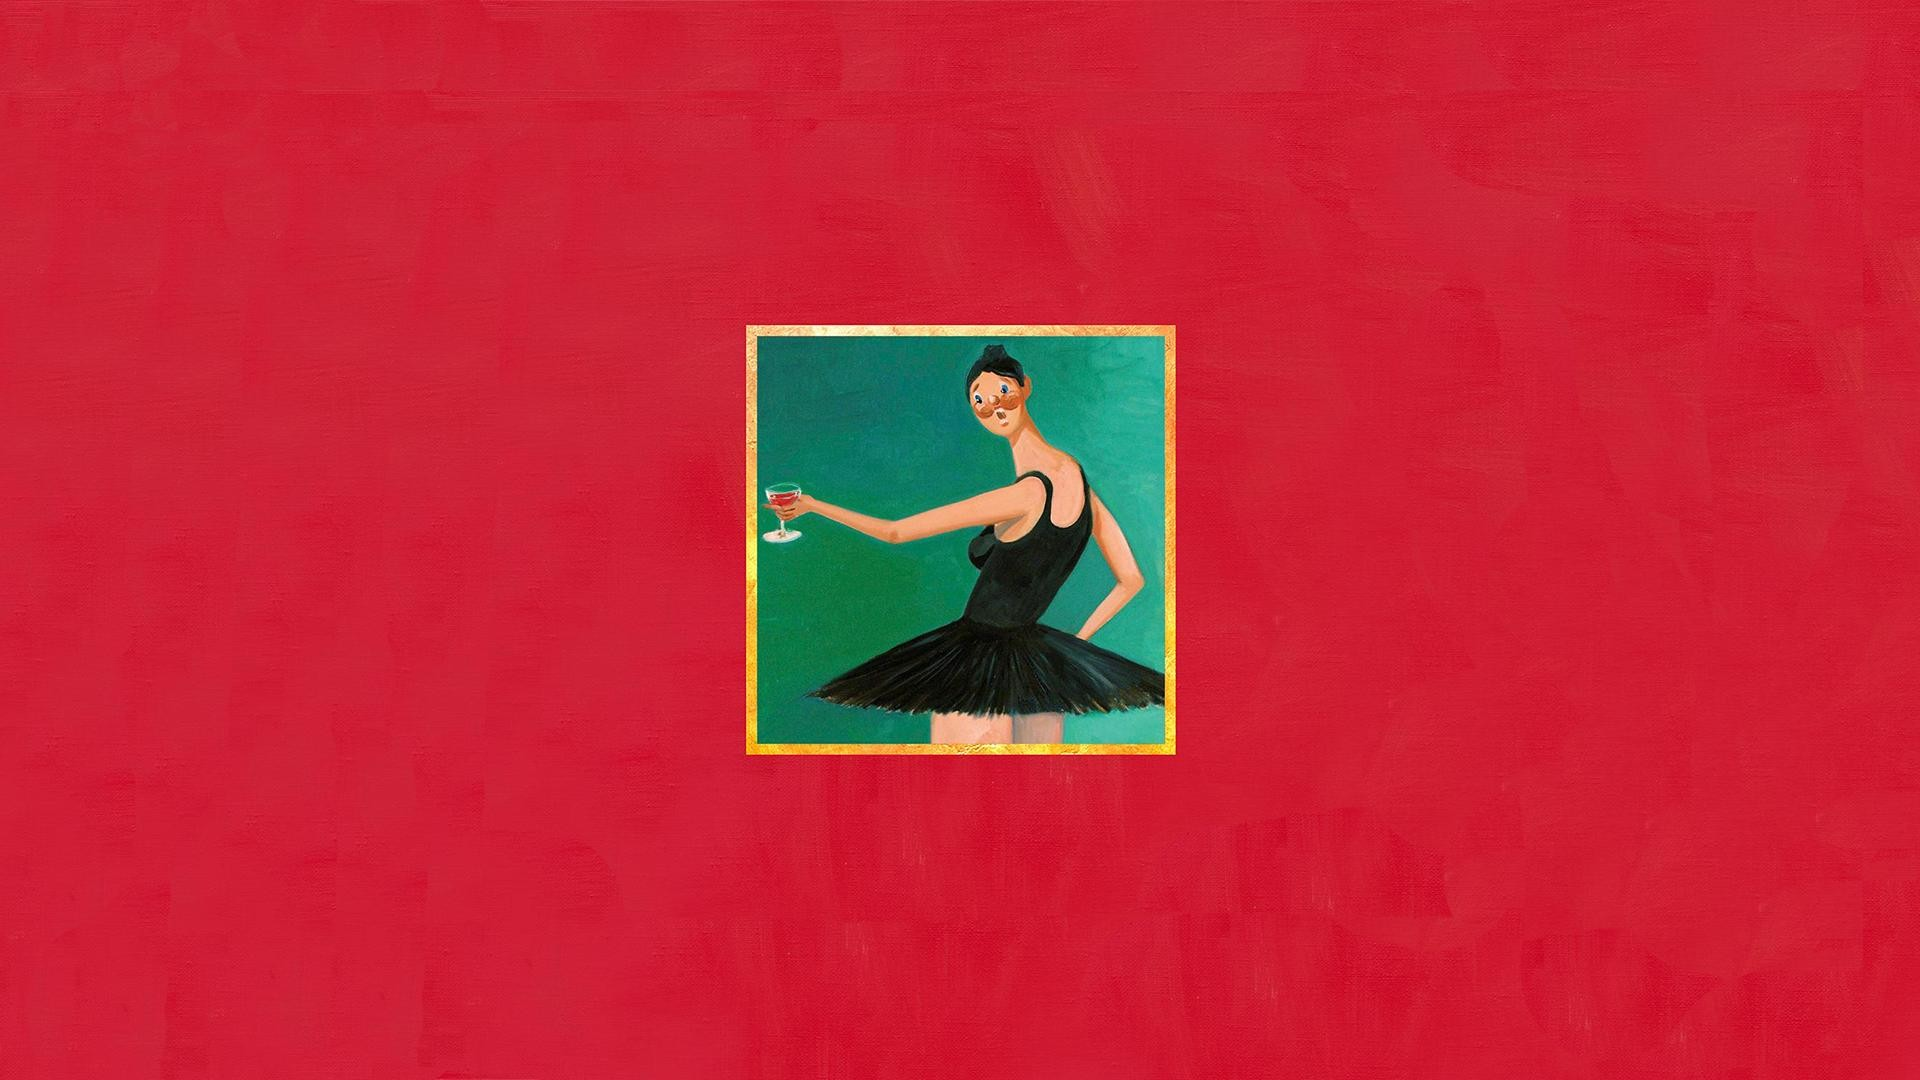 My Beautiful Dark Twisted Fantasy Wallpaper 65 images 1920x1080